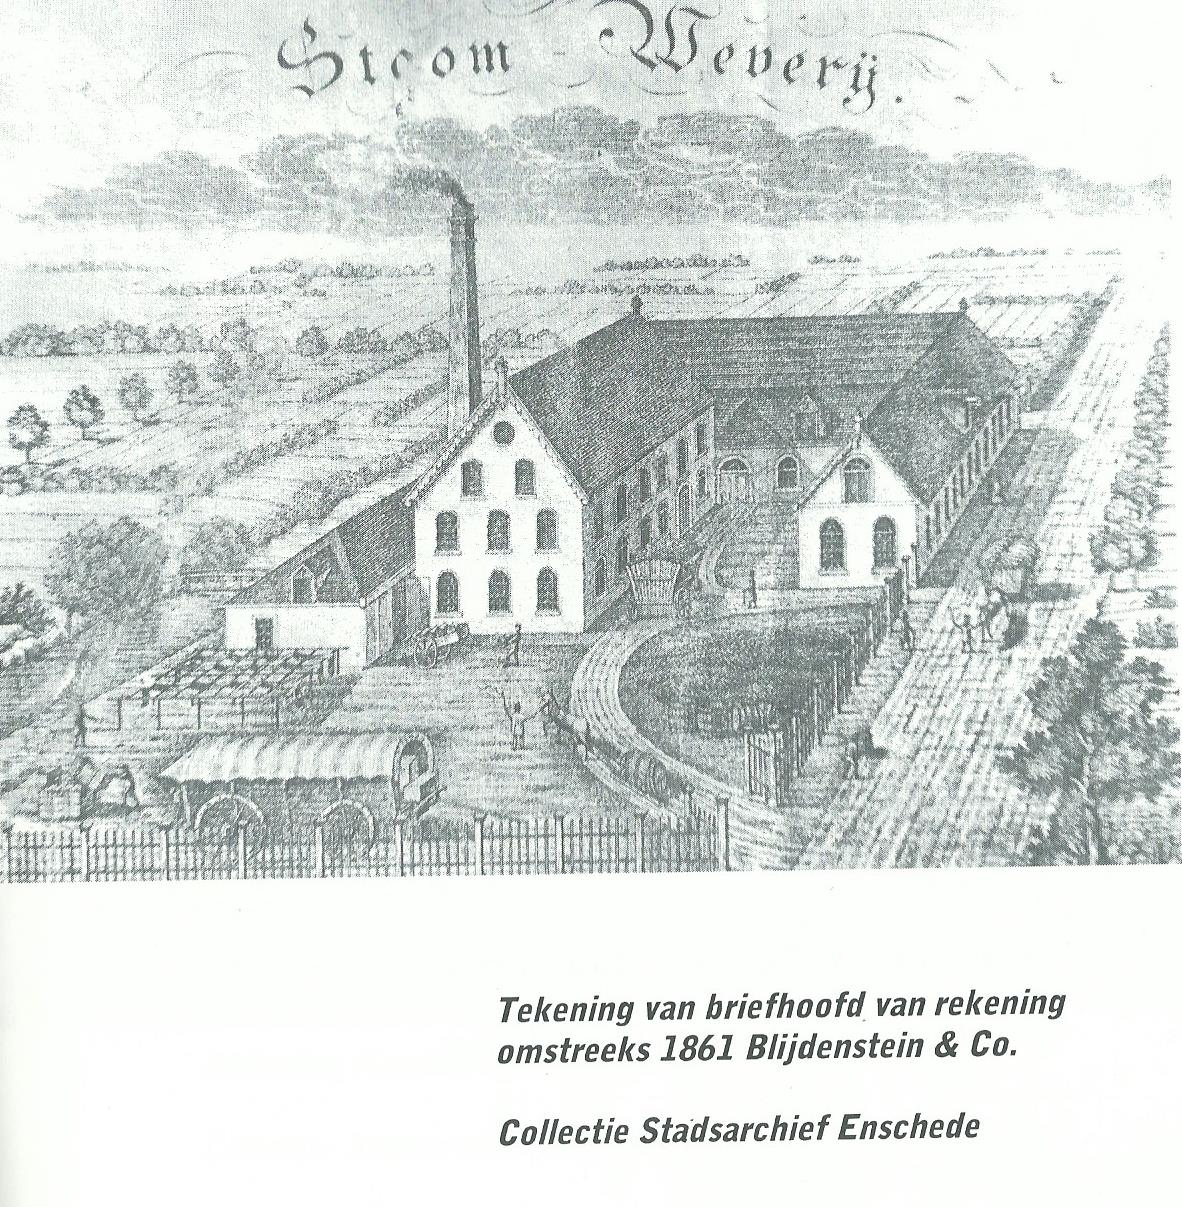 Losserscheweg later Oosterstraat Blijdenstein & co ca 1861 briefhoofd.jpg